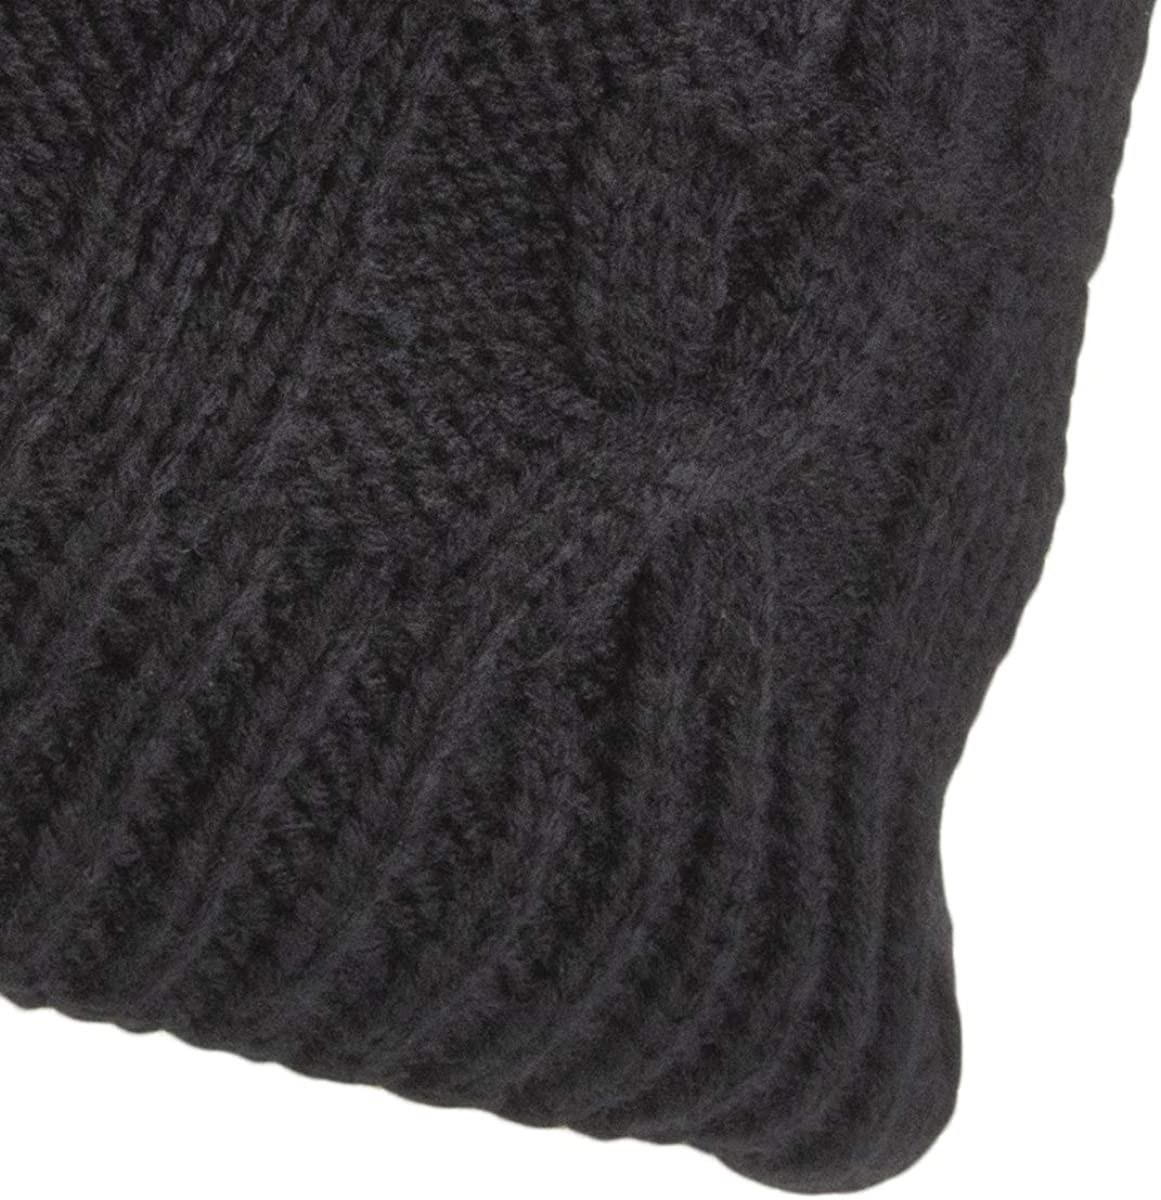 Sealskinz Waterproof Cable Knit Beanie Hat Grey Small//Medium NEW RRP £27.95